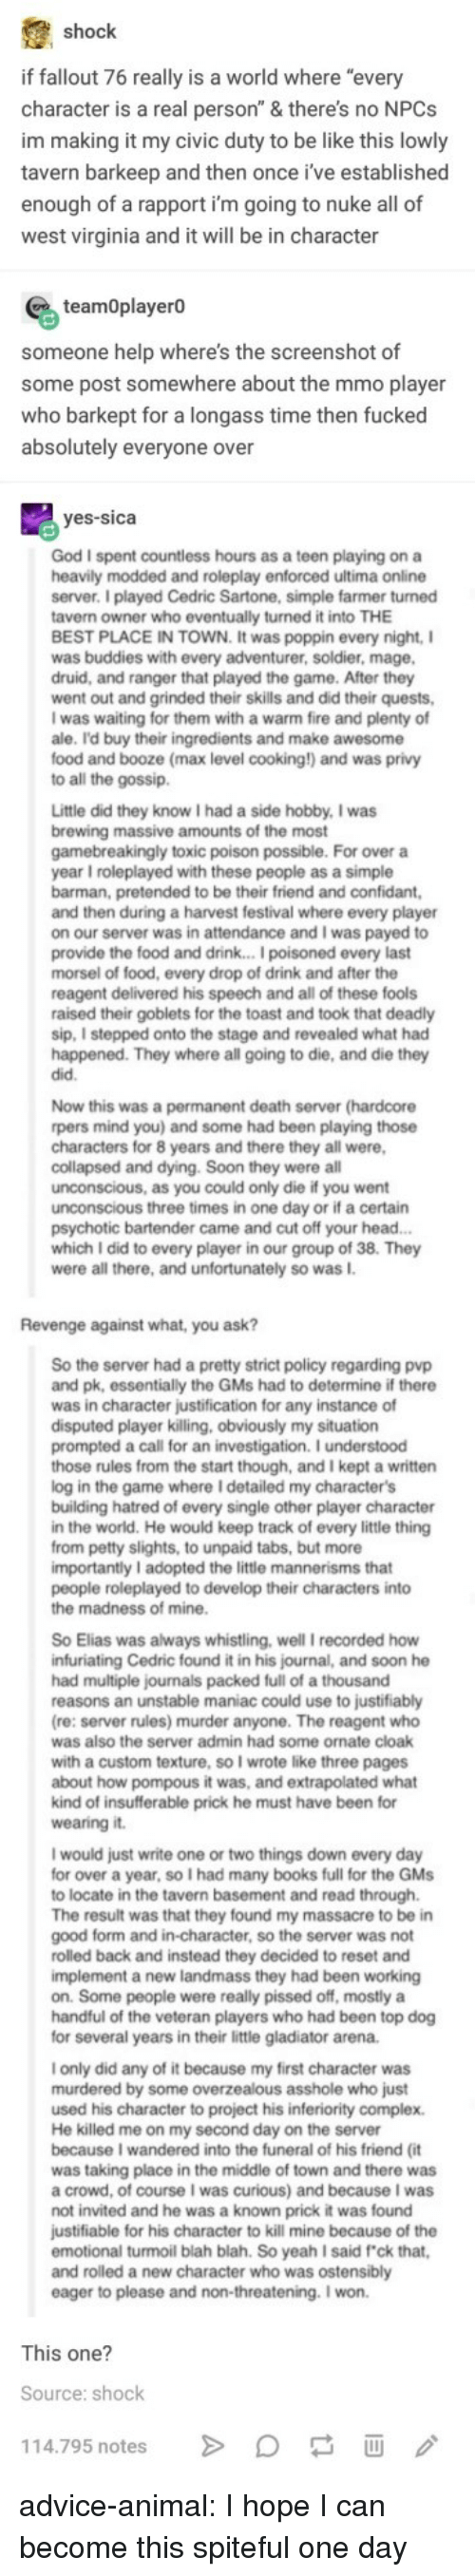 """infuriating: shock  if fallout 76 really is a world where """"every  character is a real person"""" & there's no NPCs  im making it my civic duty to be like this lowly  tavern barkeep and then once i've established  enough of a rapport i'm going to nuke all of  west virginia and it will be in character  teamOplayerO  someone help where's the screenshot of  some post somewhere about the mmo player  who barkept for a longass time then fucked  absolutely everyone over  yes-sica  God I spent countless hours as a teen playing on a  heavily modded and roleplay enforced ultima online  server. I played Cedric Sartone, simple farmer turned  tavern owner who eventually turned it into THE  BEST PLACE IN TOWN. It was poppin every night, I  was buddies with every adventurer, soldier, mage  druid, and ranger that played the game. After they  went out and grinded their skills and did their quests,  I was waiting for them with a warm fire and plenty of  ale. I'd buy their ingredients and make awesome  food and booze (max level cooking!) and was privy  to all the gossip.  Little did they know I had a side hobby, I was  brewing massive amounts of the most  gamebreakingly toxic poison possible. For over a  year I roleplayed with these people as a simple  barman, pretended to be their friend and confidant  and then during a harvest festival where every player  on our server was in attendance and I was payed to  provide the food and drink... I poisoned every last  morsel of food, every drop of drink and after the  reagent delivered his speech and all of these fools  raised their goblets for the toast and took that deadly  sip, I stepped onto the stage and revealed what had  happened. They where all going to die, and die they  did.  Now this was a permanent death server (hardcore  rpers mind you) and some had been playing those  characters for 8 years and there they all were  collapsed and dying. Soon they were all  unconscious, as you could only die if you went  unconscious three times in one"""